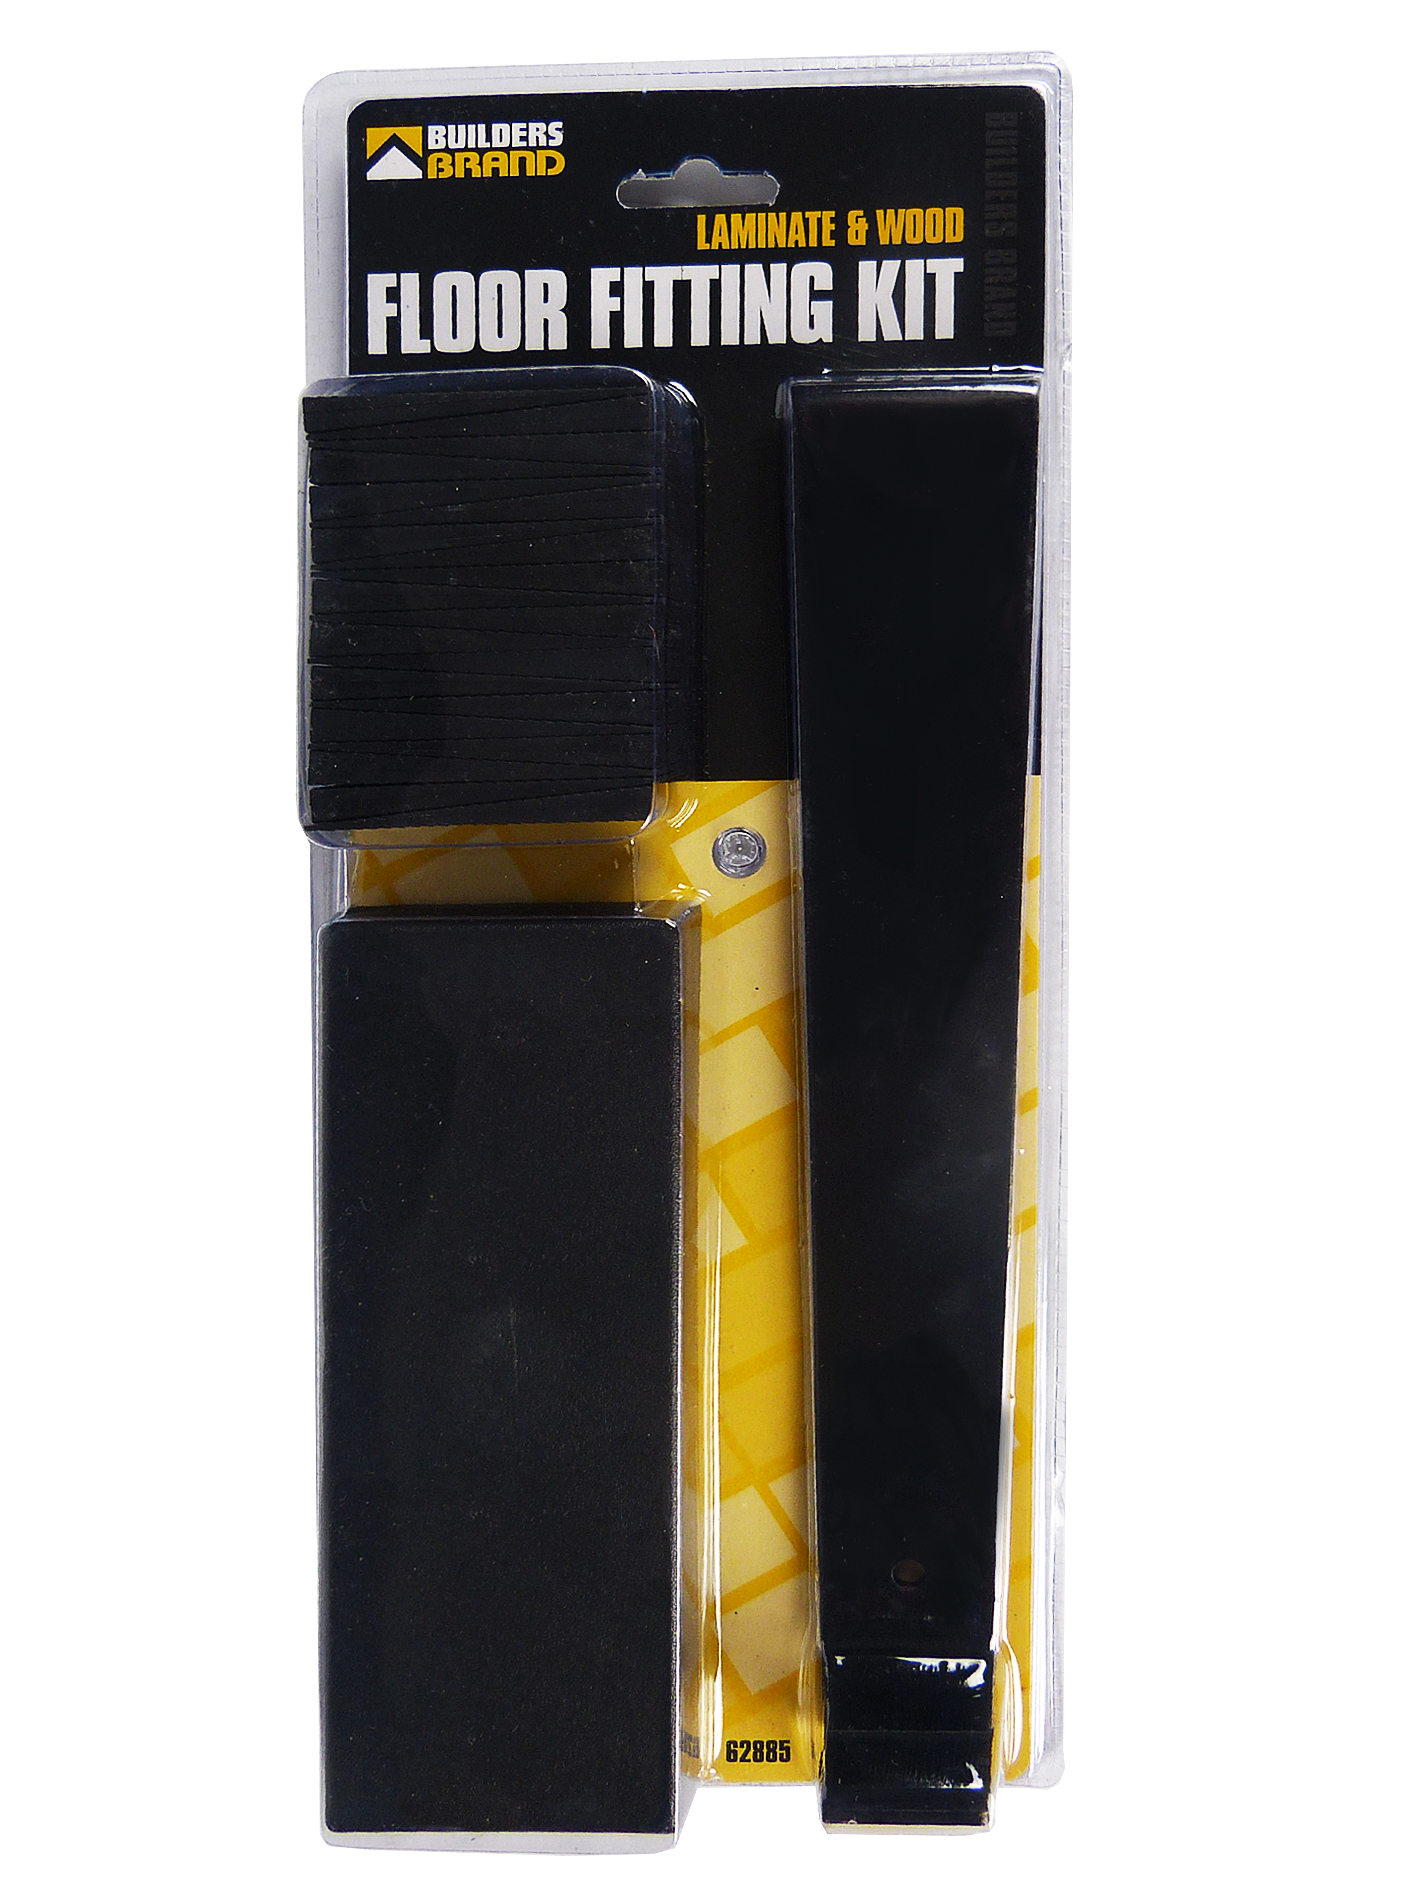 Wooden Floor Installation Tool Kit Installs Laminate And Wood With Ease